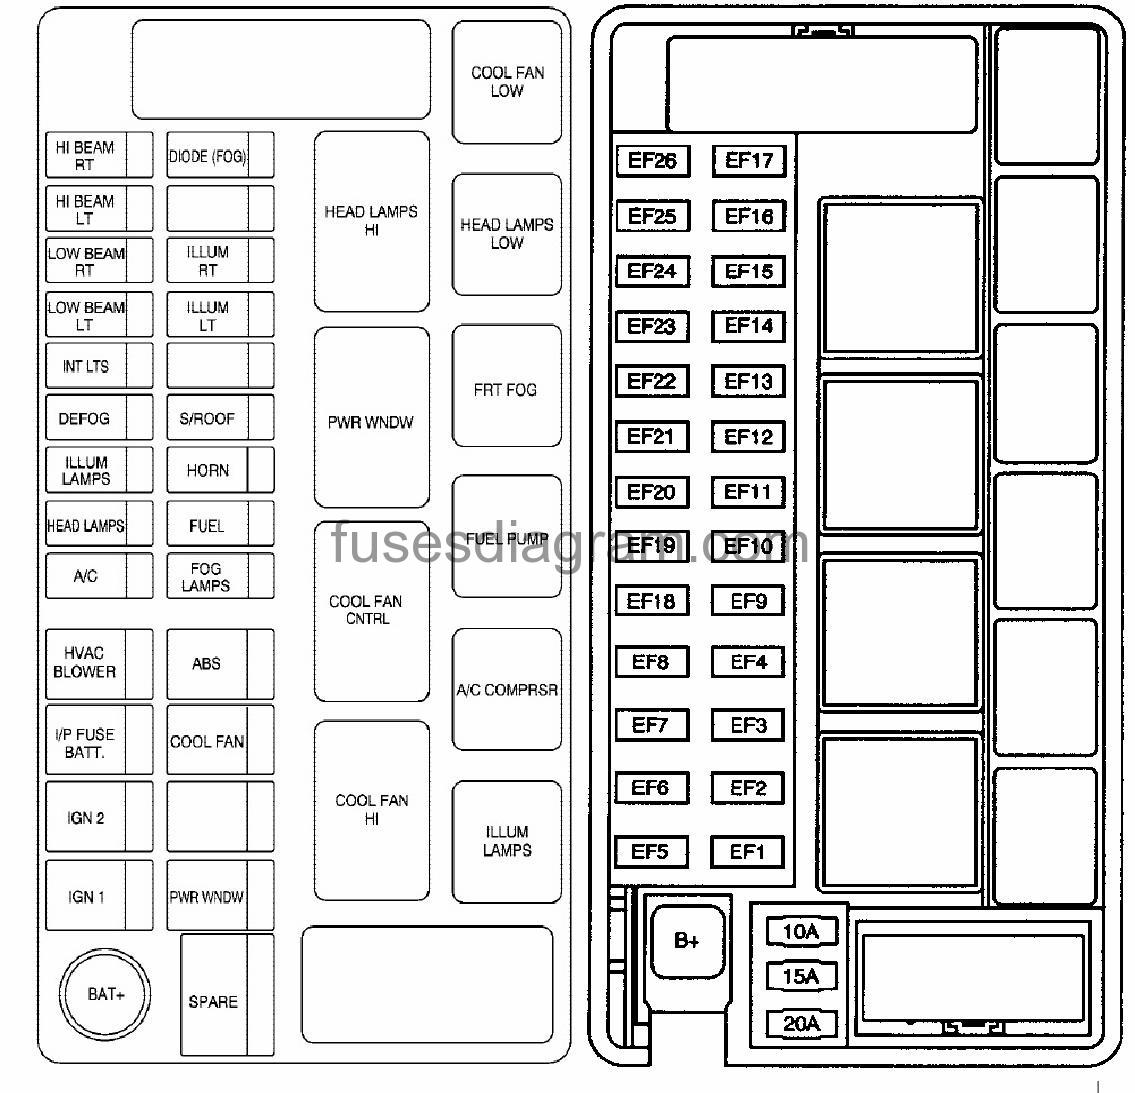 2004 chevy aveo fuse box diagram schematics wiring diagrams u2022 rh  seniorlivinguniversity co 2002 Chevy Silverado Fuse Box Diagram 2006 chevy  hhr lt fuse ...